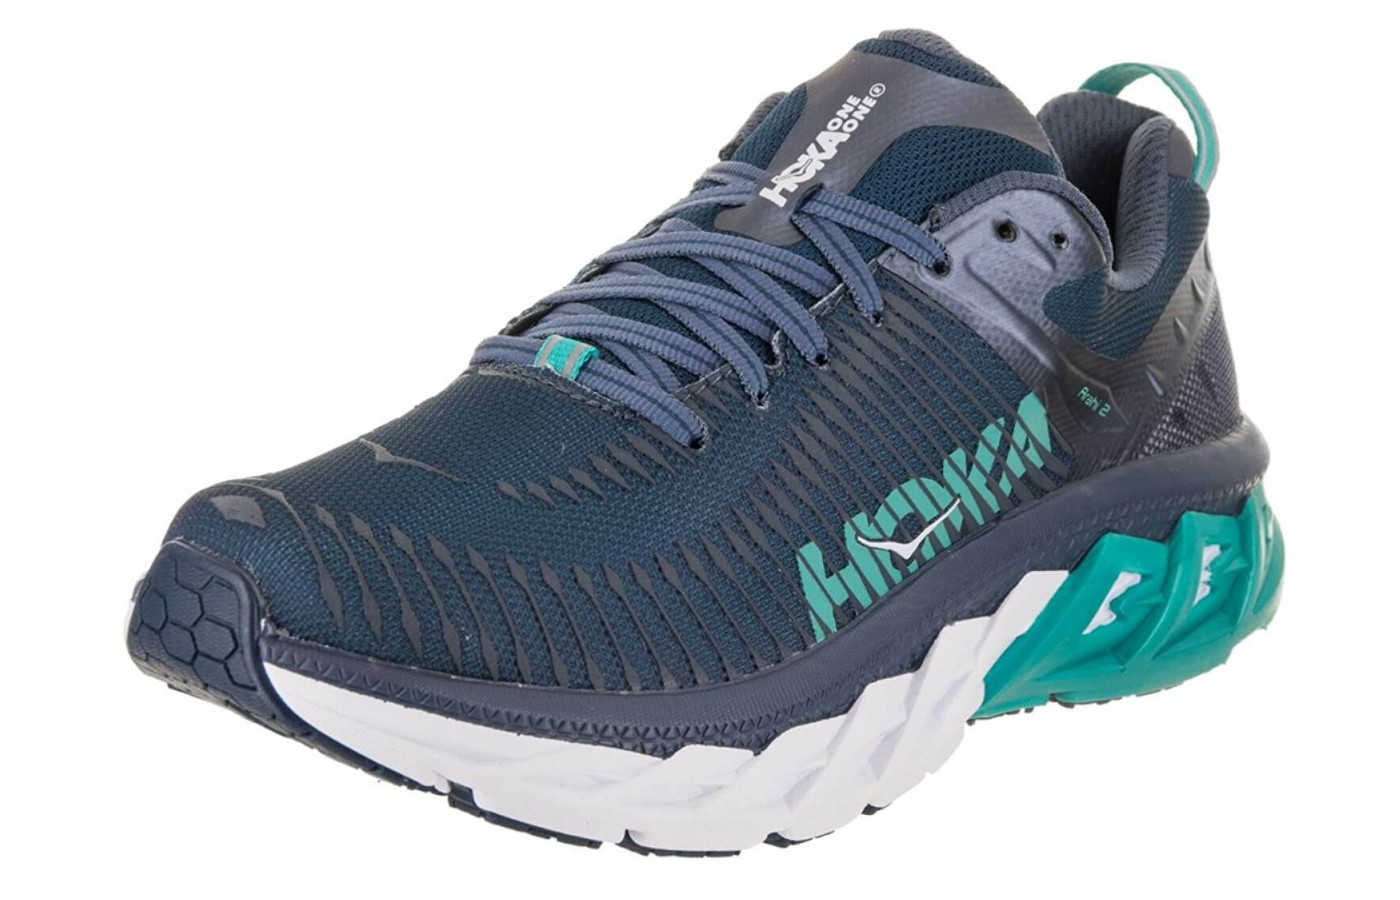 The Hoka One One Arahi 2 has a mesh upper